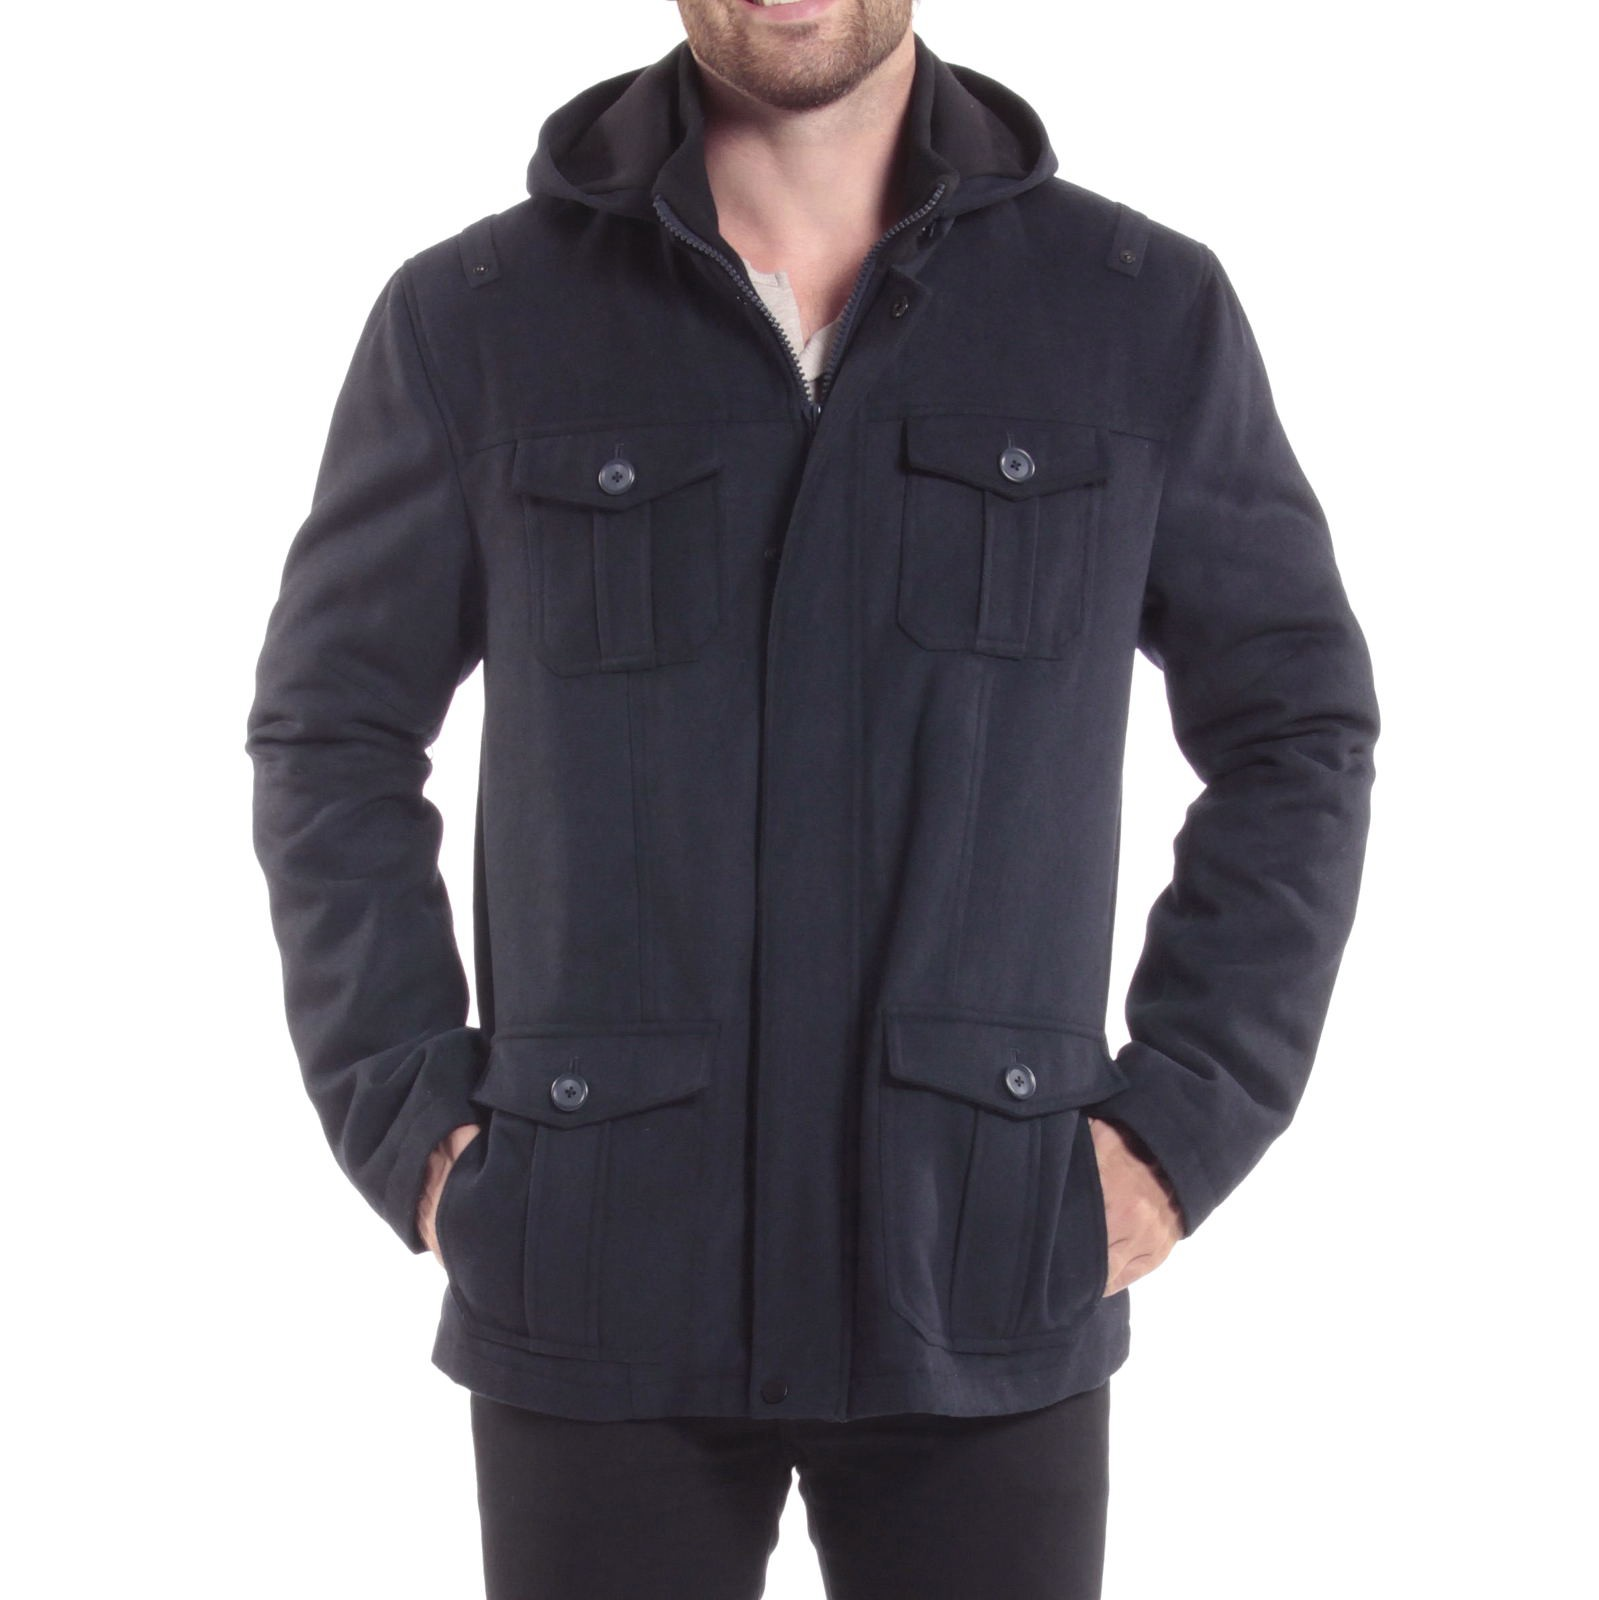 Alpine-Swiss-Noah-Mens-Wool-Coat-Parka-with-Removable-Hood-Jacket-Cargo-Pockets thumbnail 46